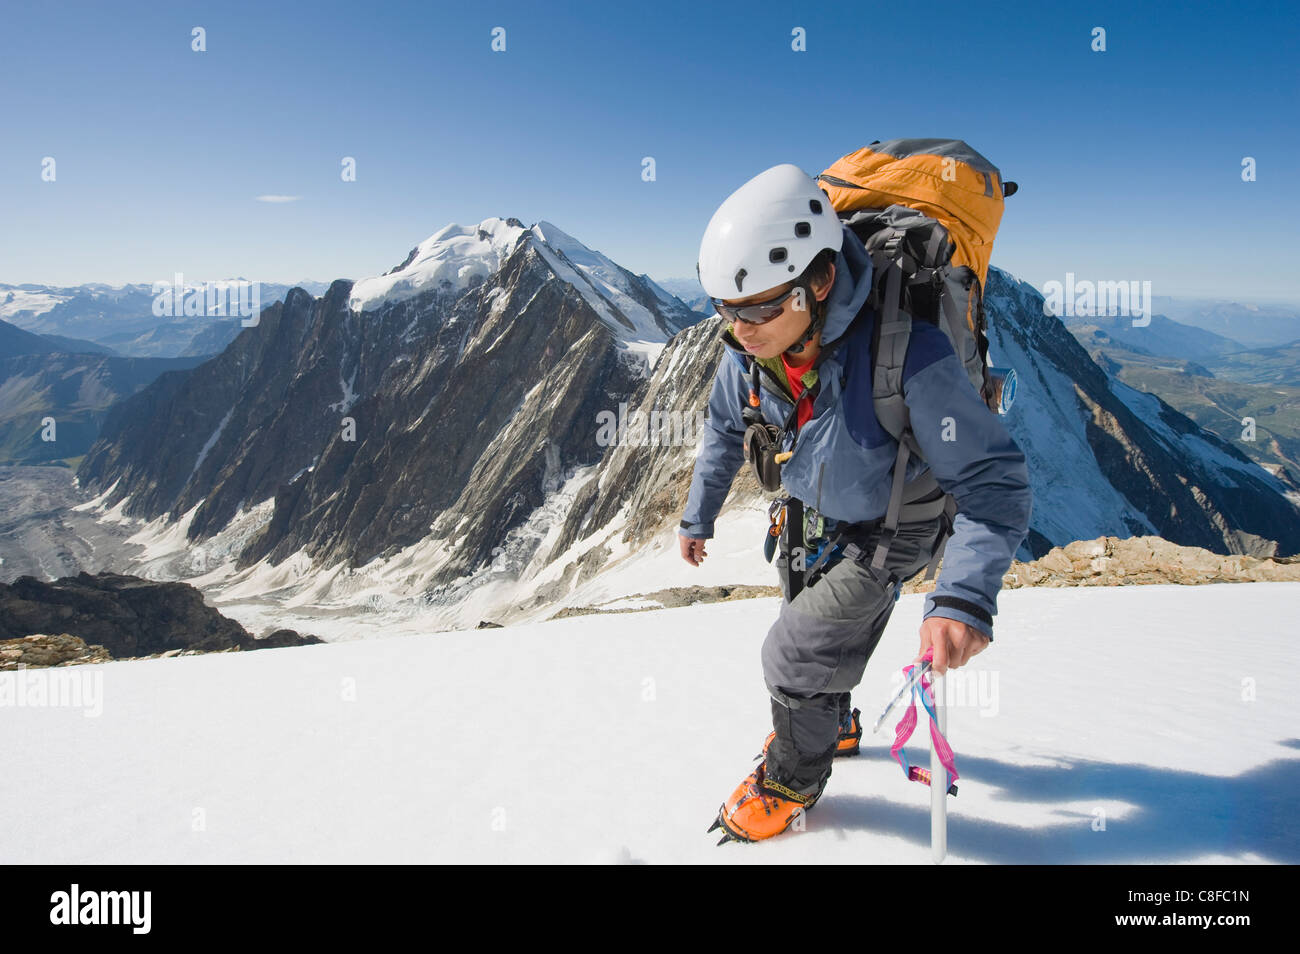 Climber on Aiguille de Bionnassay on the route to Mont Blanc, French Alps, France - Stock Image